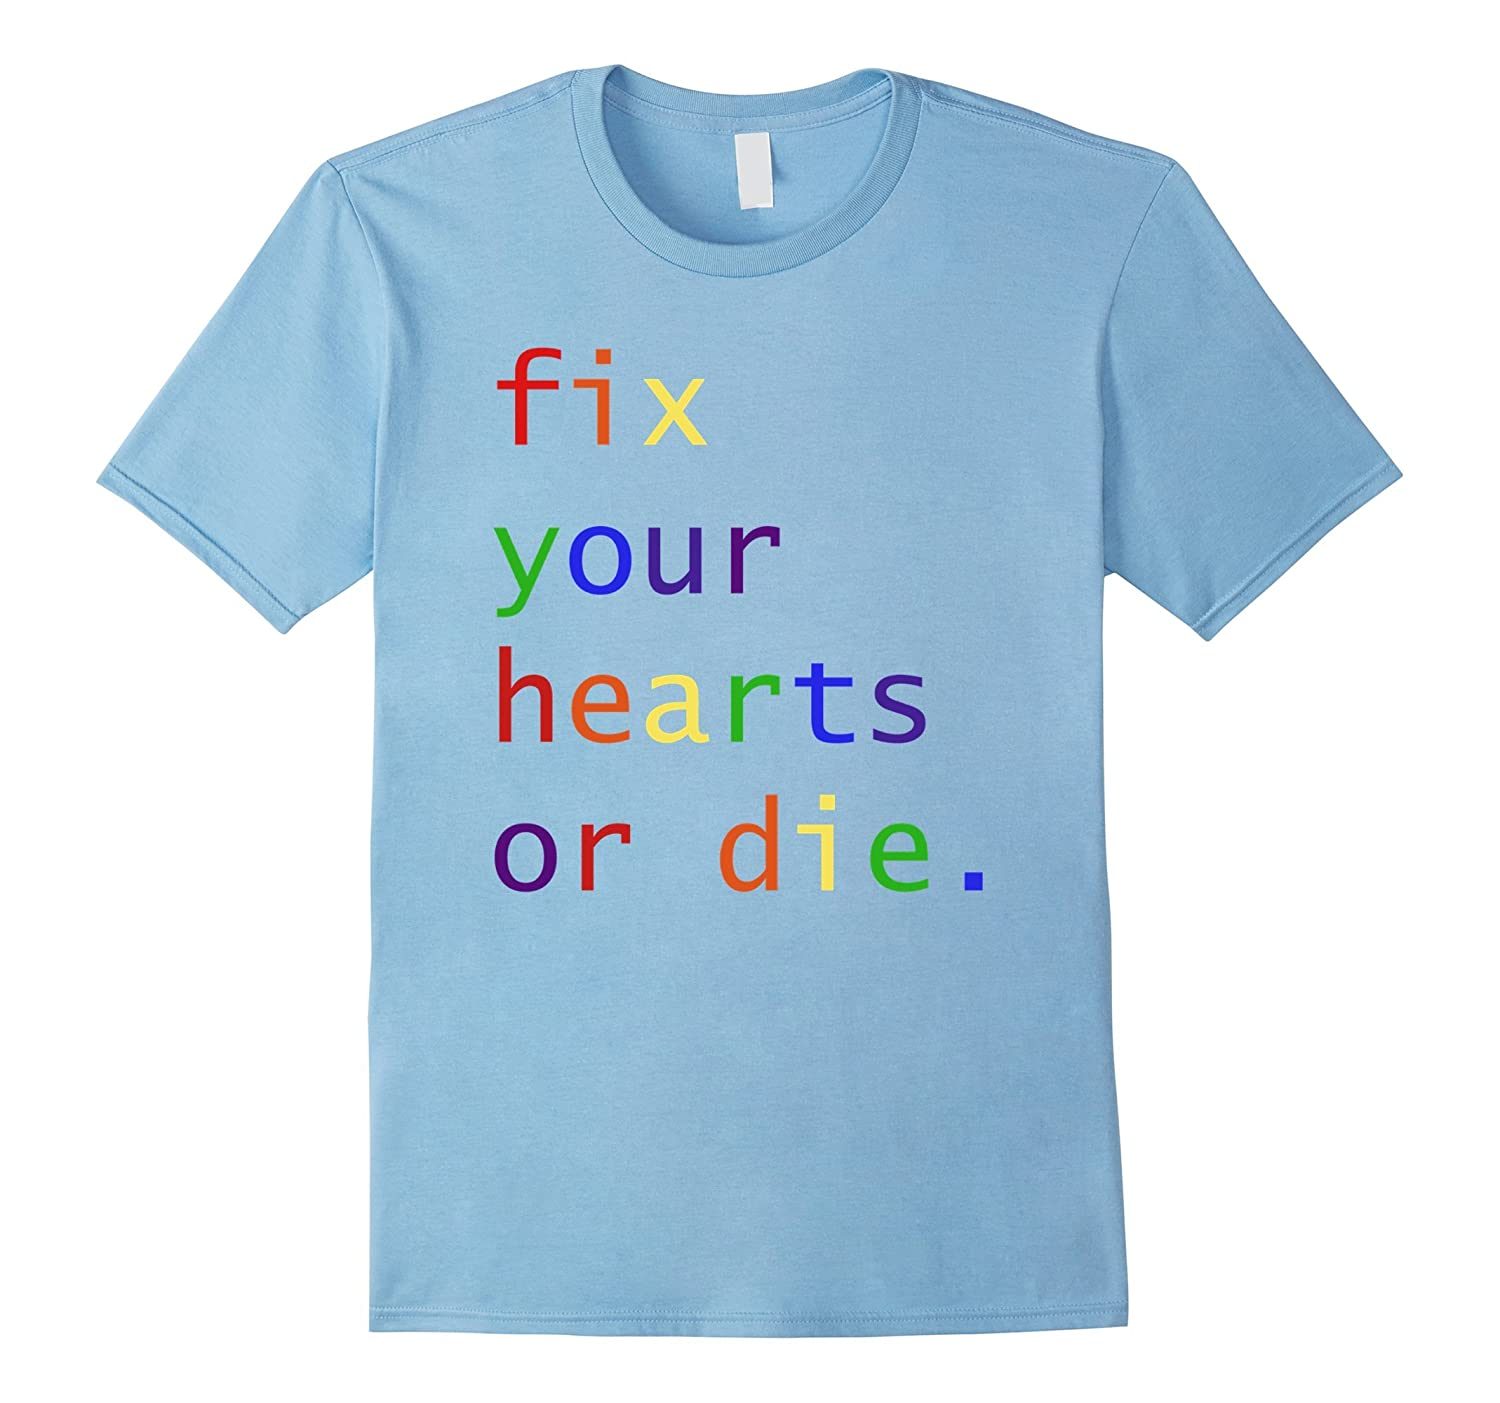 Amazoncom Fix Your Hearts Or Die Lgbt Pride Shirt Clothing